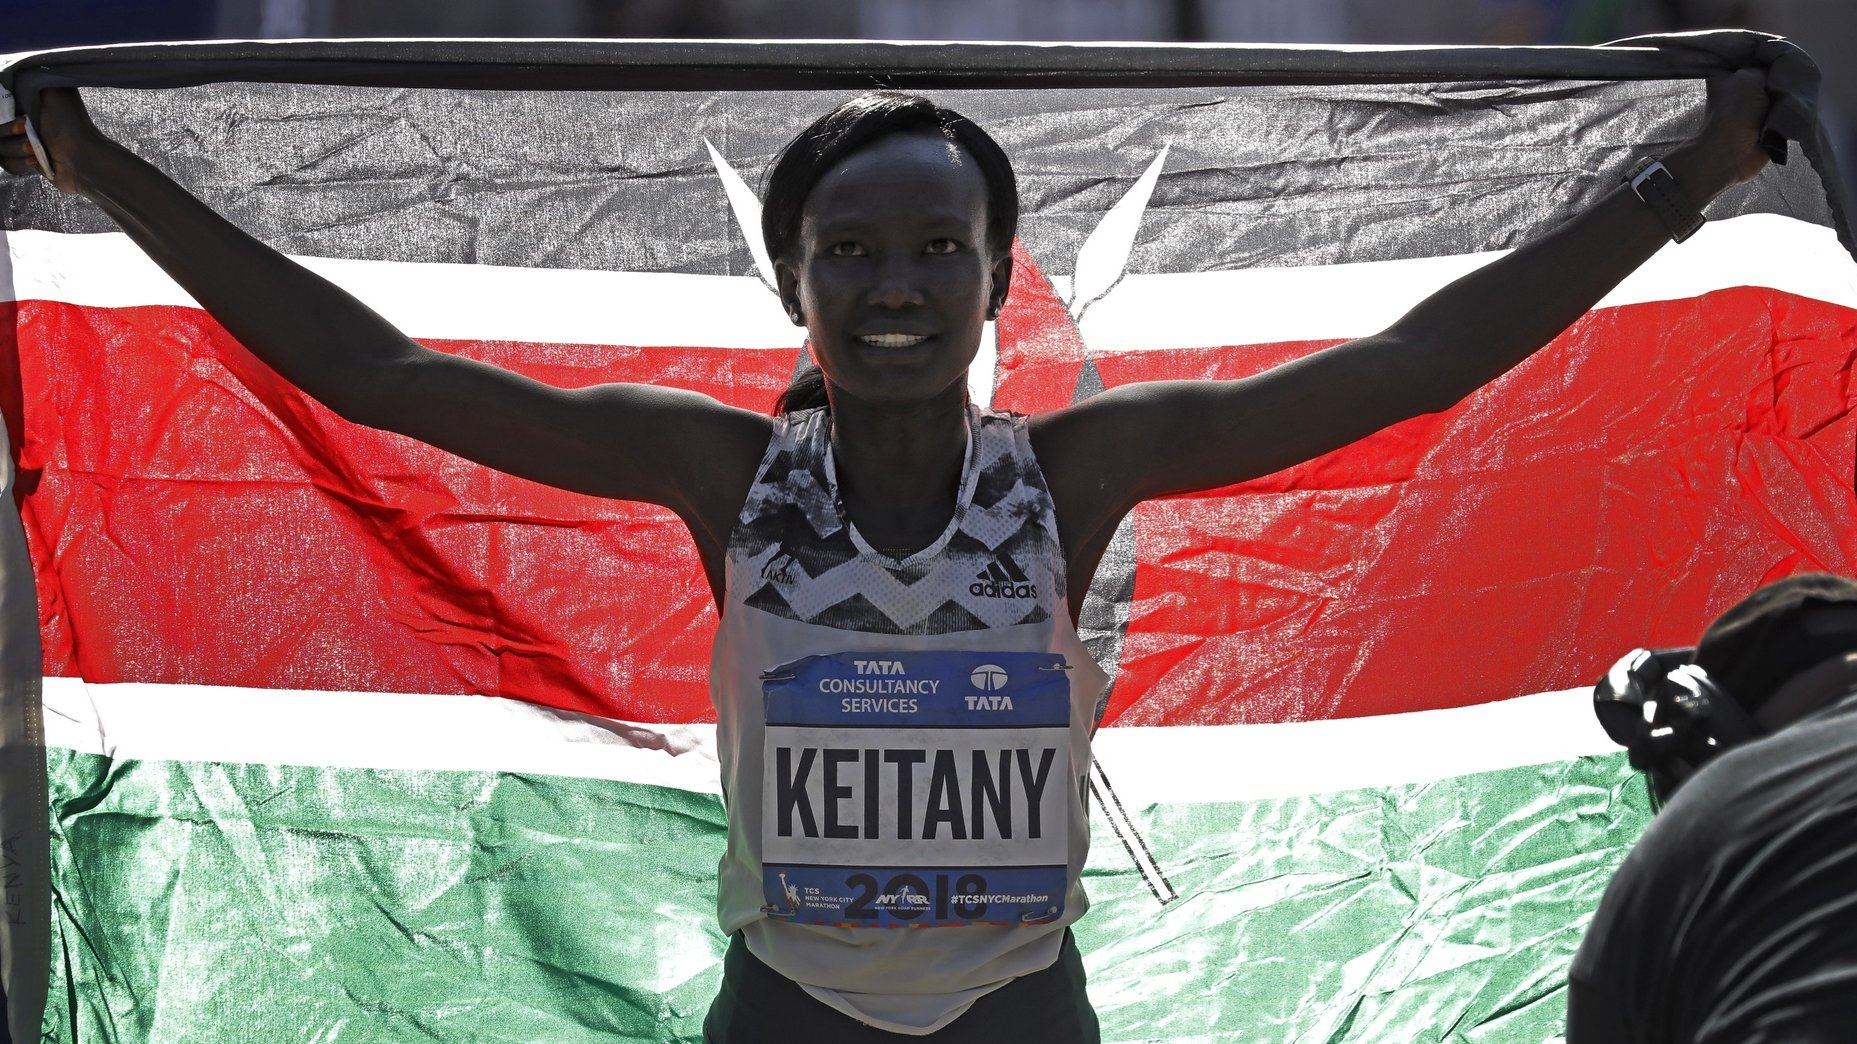 epa07141599 First place Women's finisher Mary Keitany of Kenya holds up Kenya's flag at the finish line of 2018 TCS New York City Marathon, in Central Park, New York, New York, USA, 04 November 2018.  EPA/PETER FOLEY